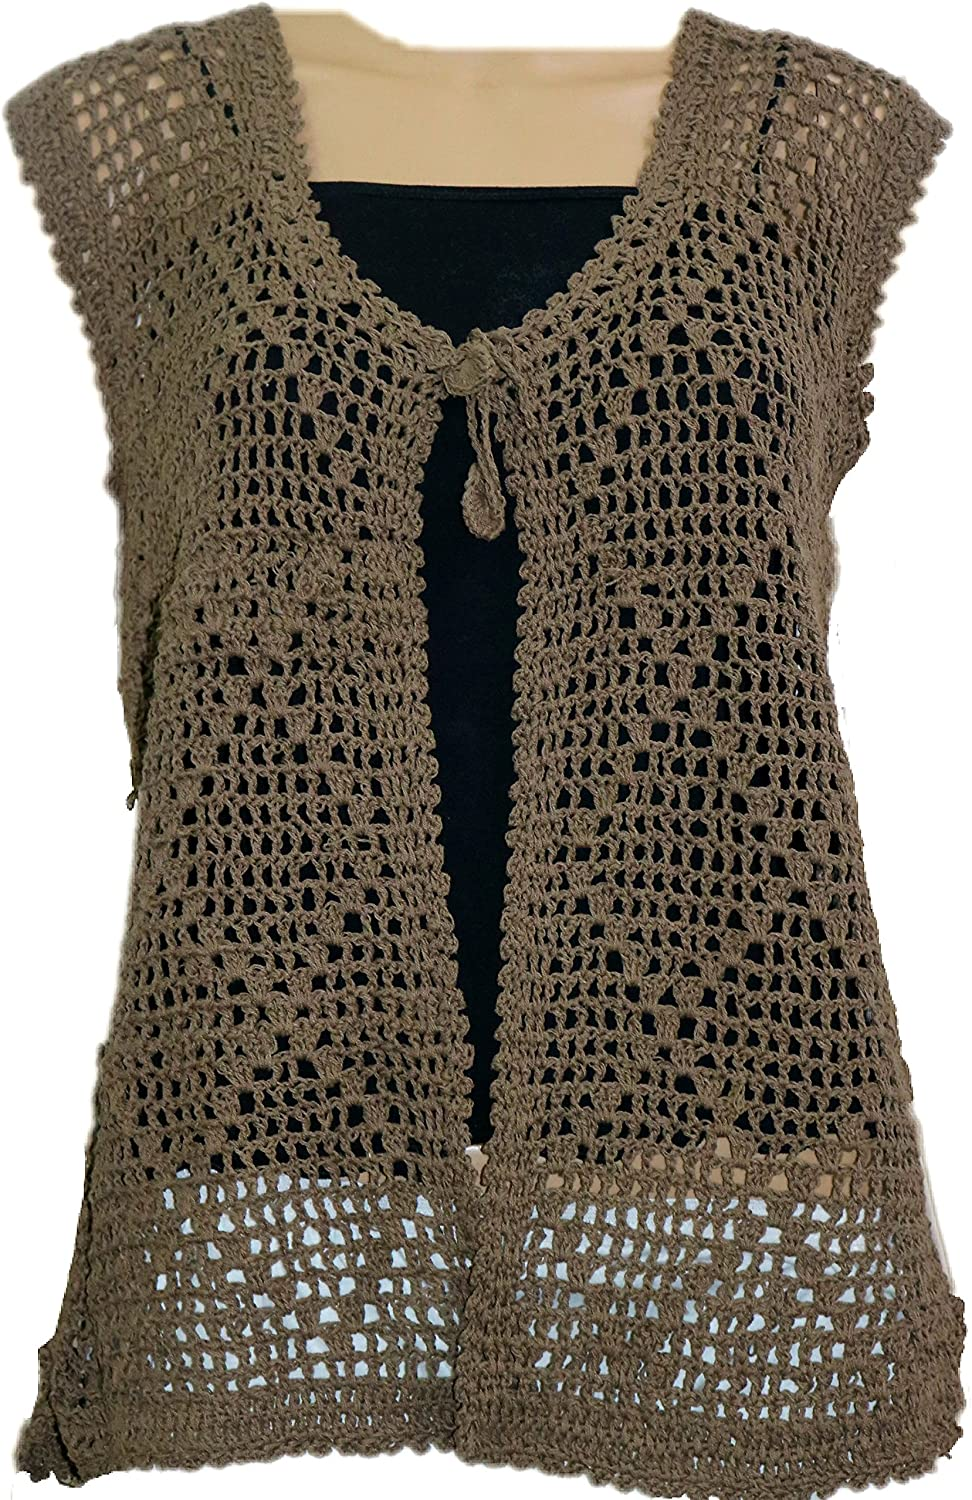 WOMENS HAND WOVEN LACE CROCHET NEW SLEEVLESS JACKET, OPEN FRONT WITH A KNOT ...